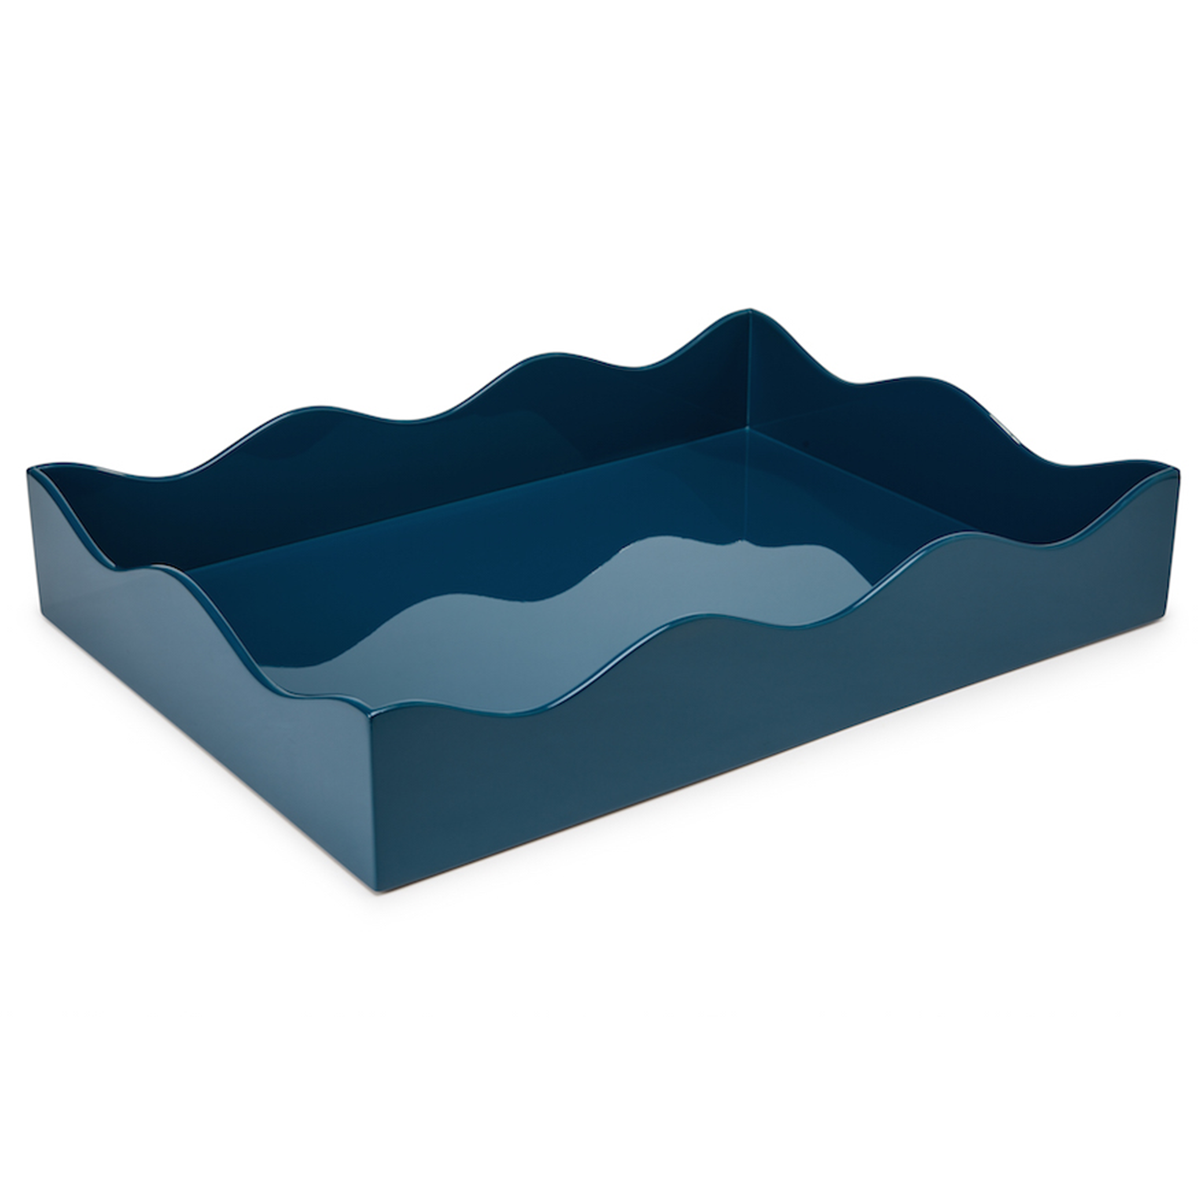 Large Belles Rives Tray - Marine Blue